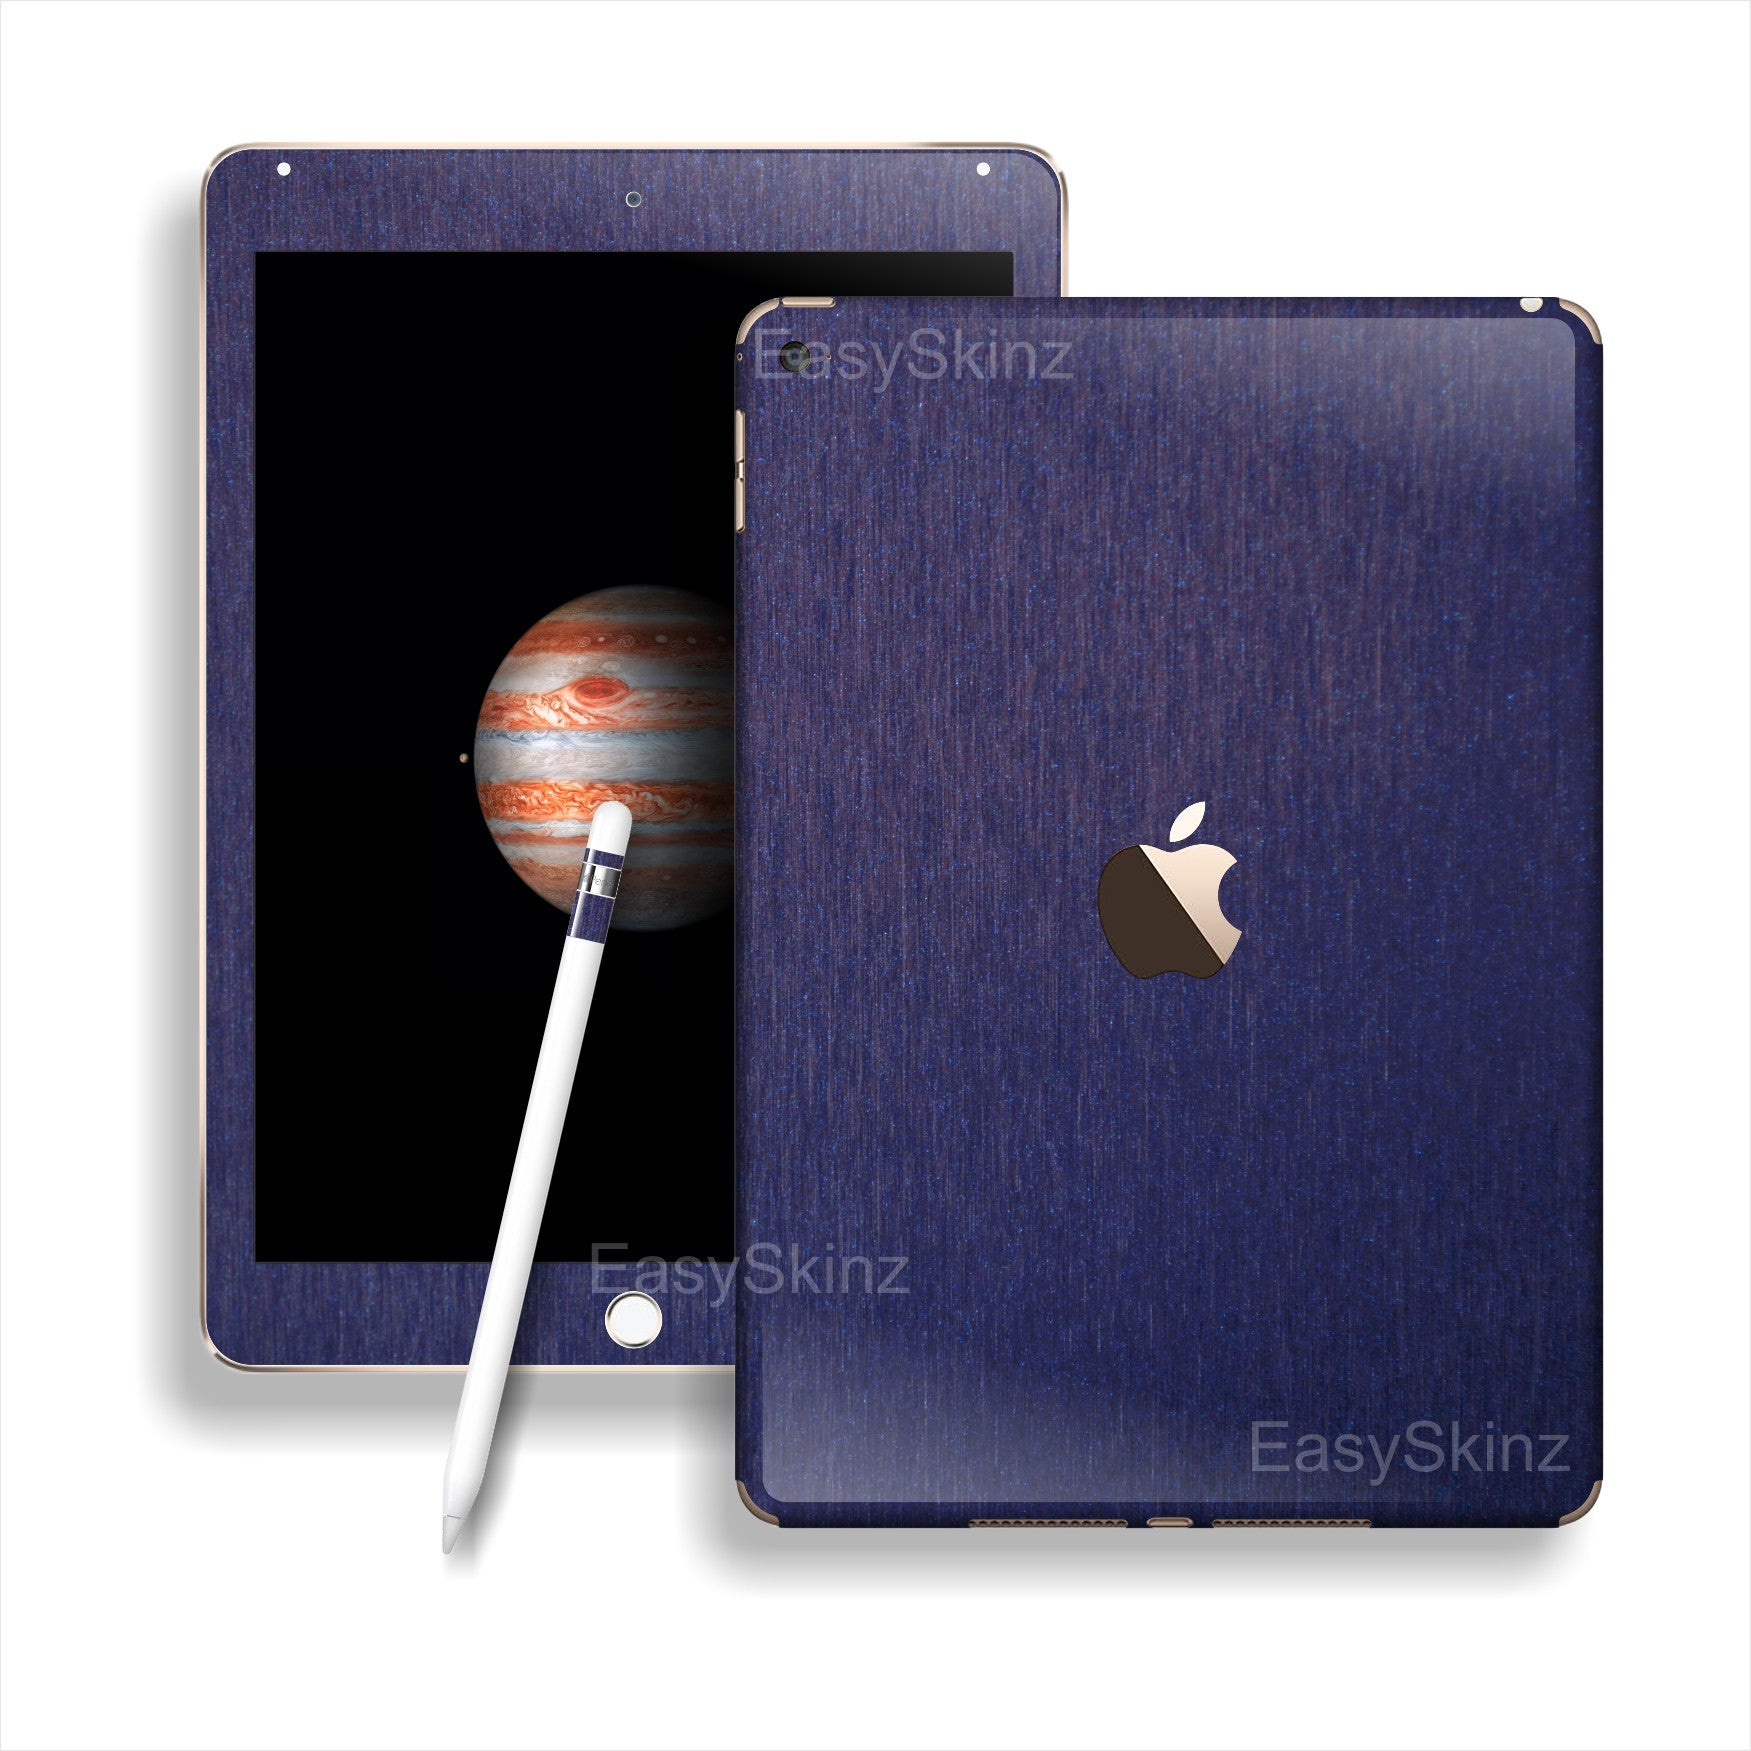 iPad PRO 3M Brushed BLUE Metallic Skin Wrap Sticker Decal Cover Protector by EasySkinz